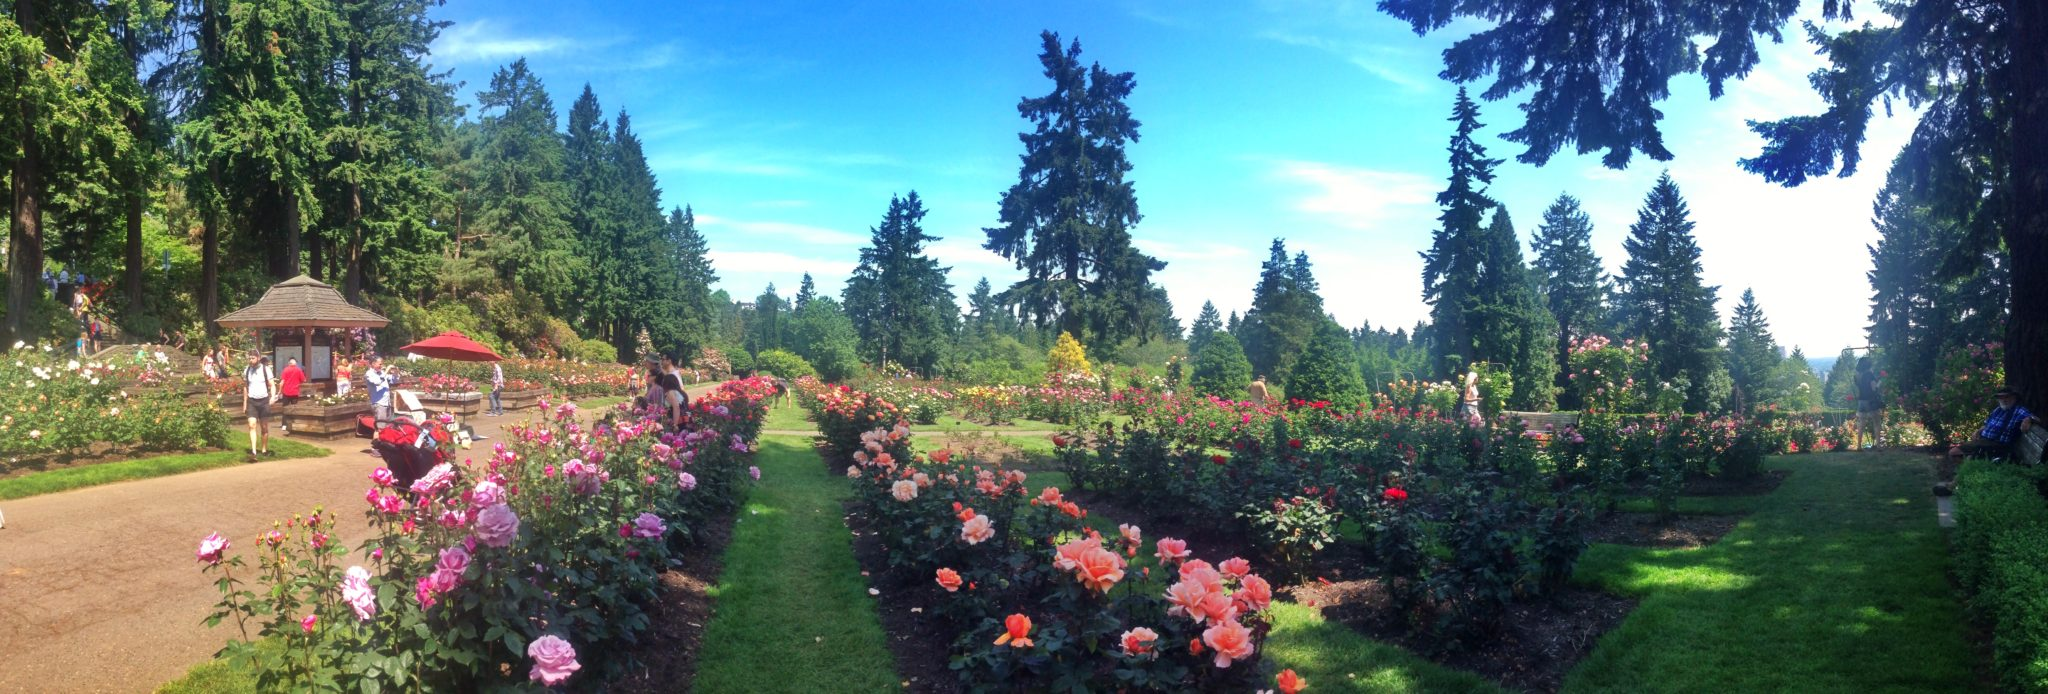 International Rose Test Garden, Washington Park, Portland, Oregon